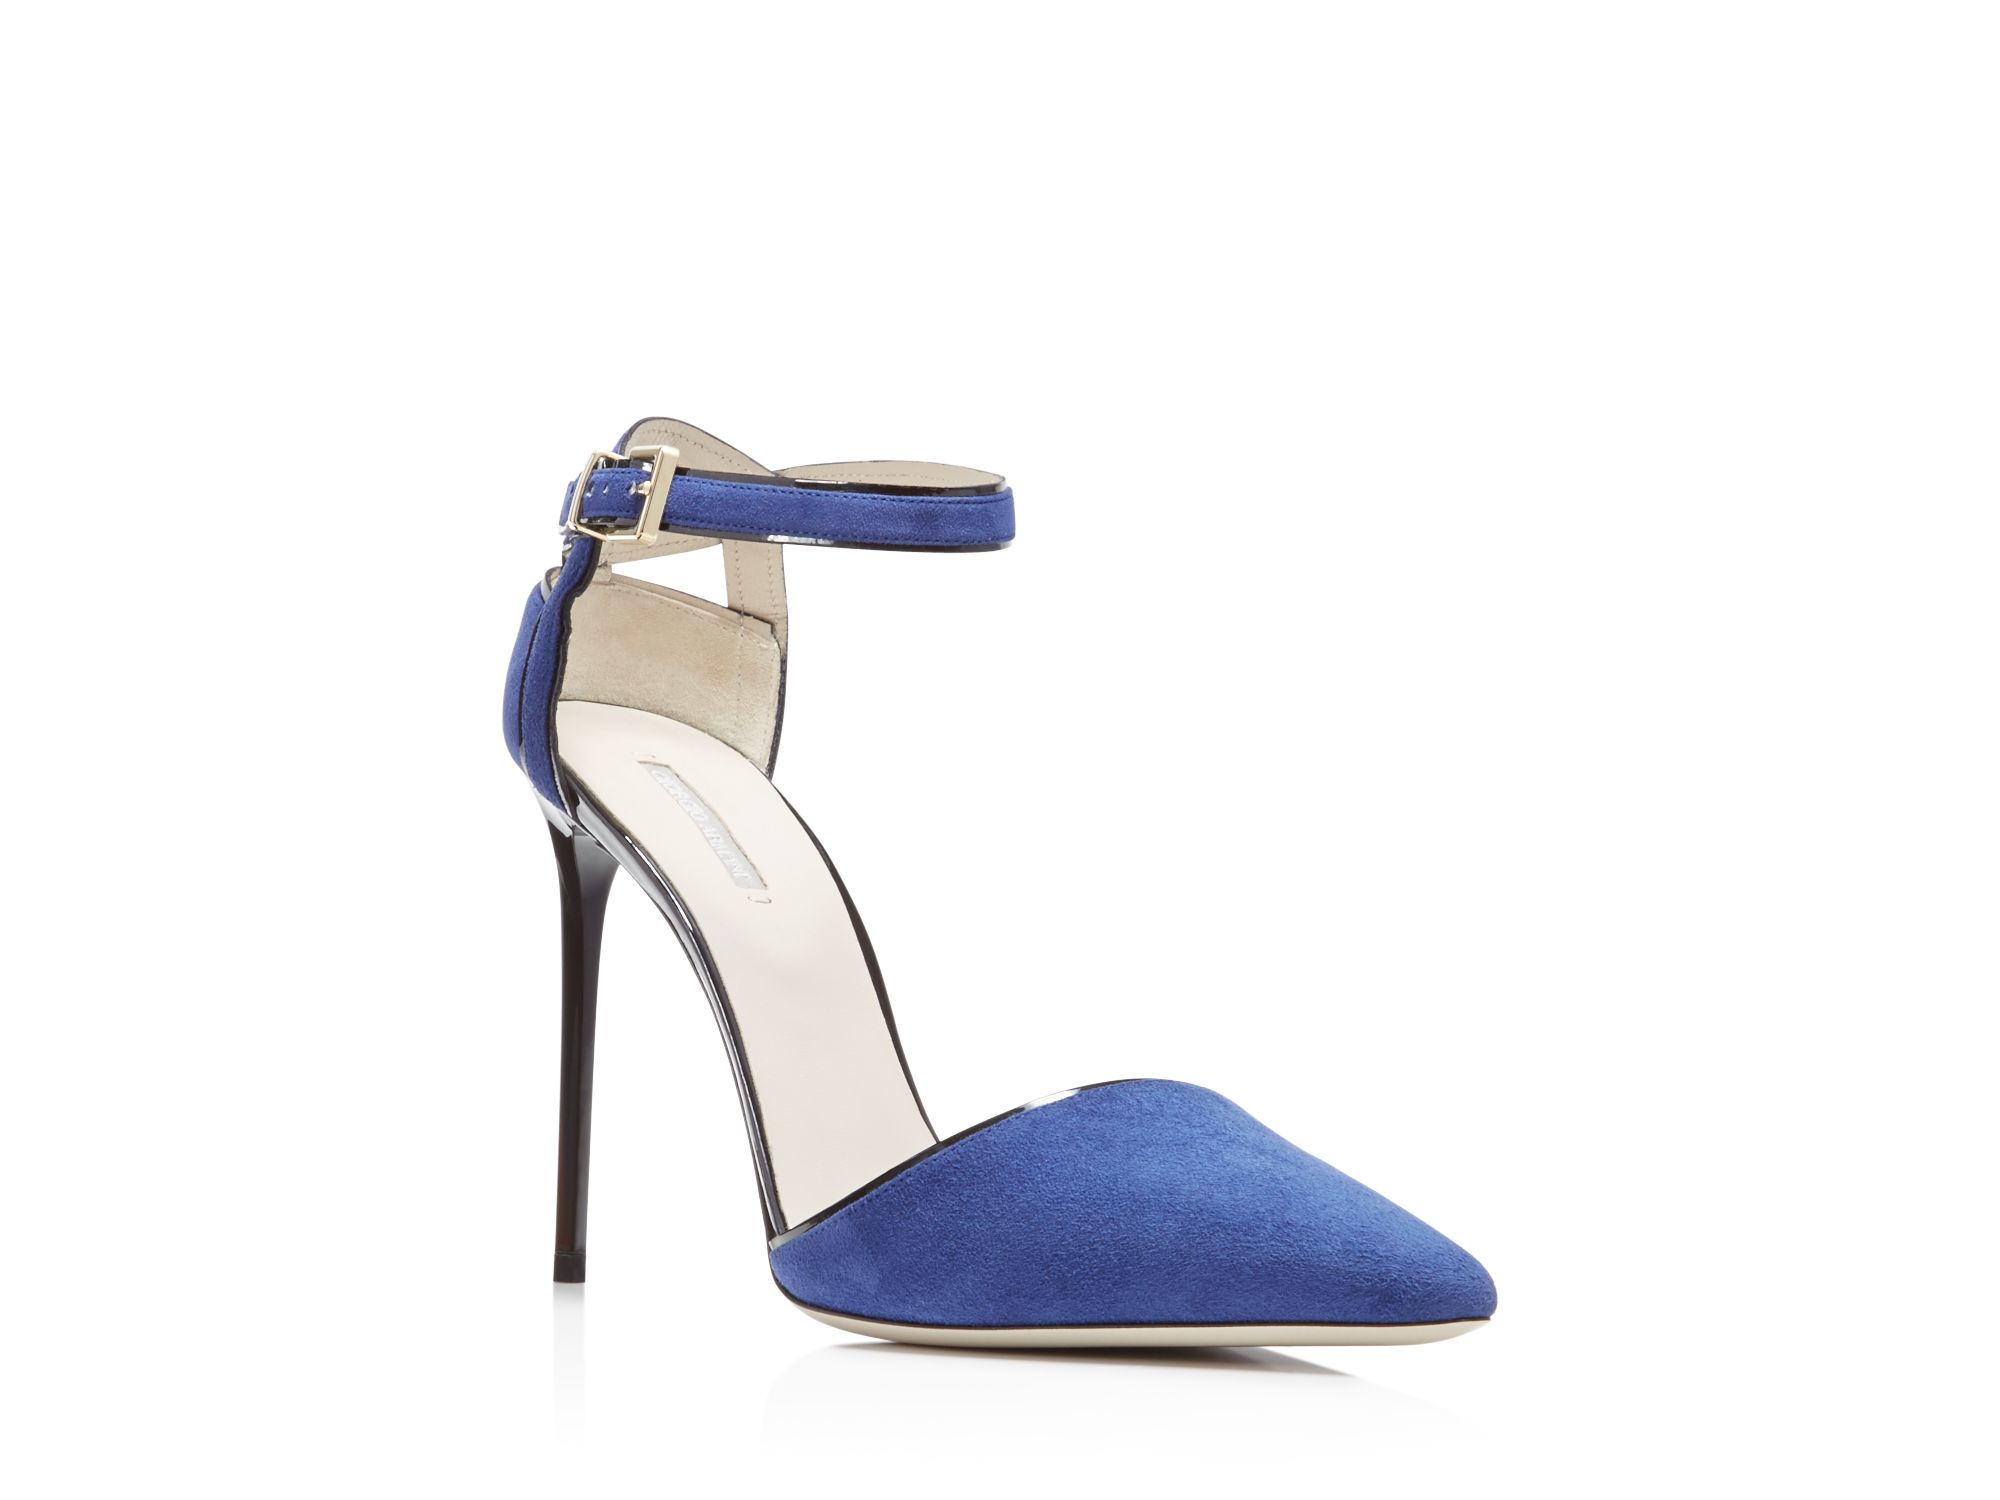 Giorgio armani Piped D'orsay Ankle Strap Pointed Pumps in Blue | Lyst